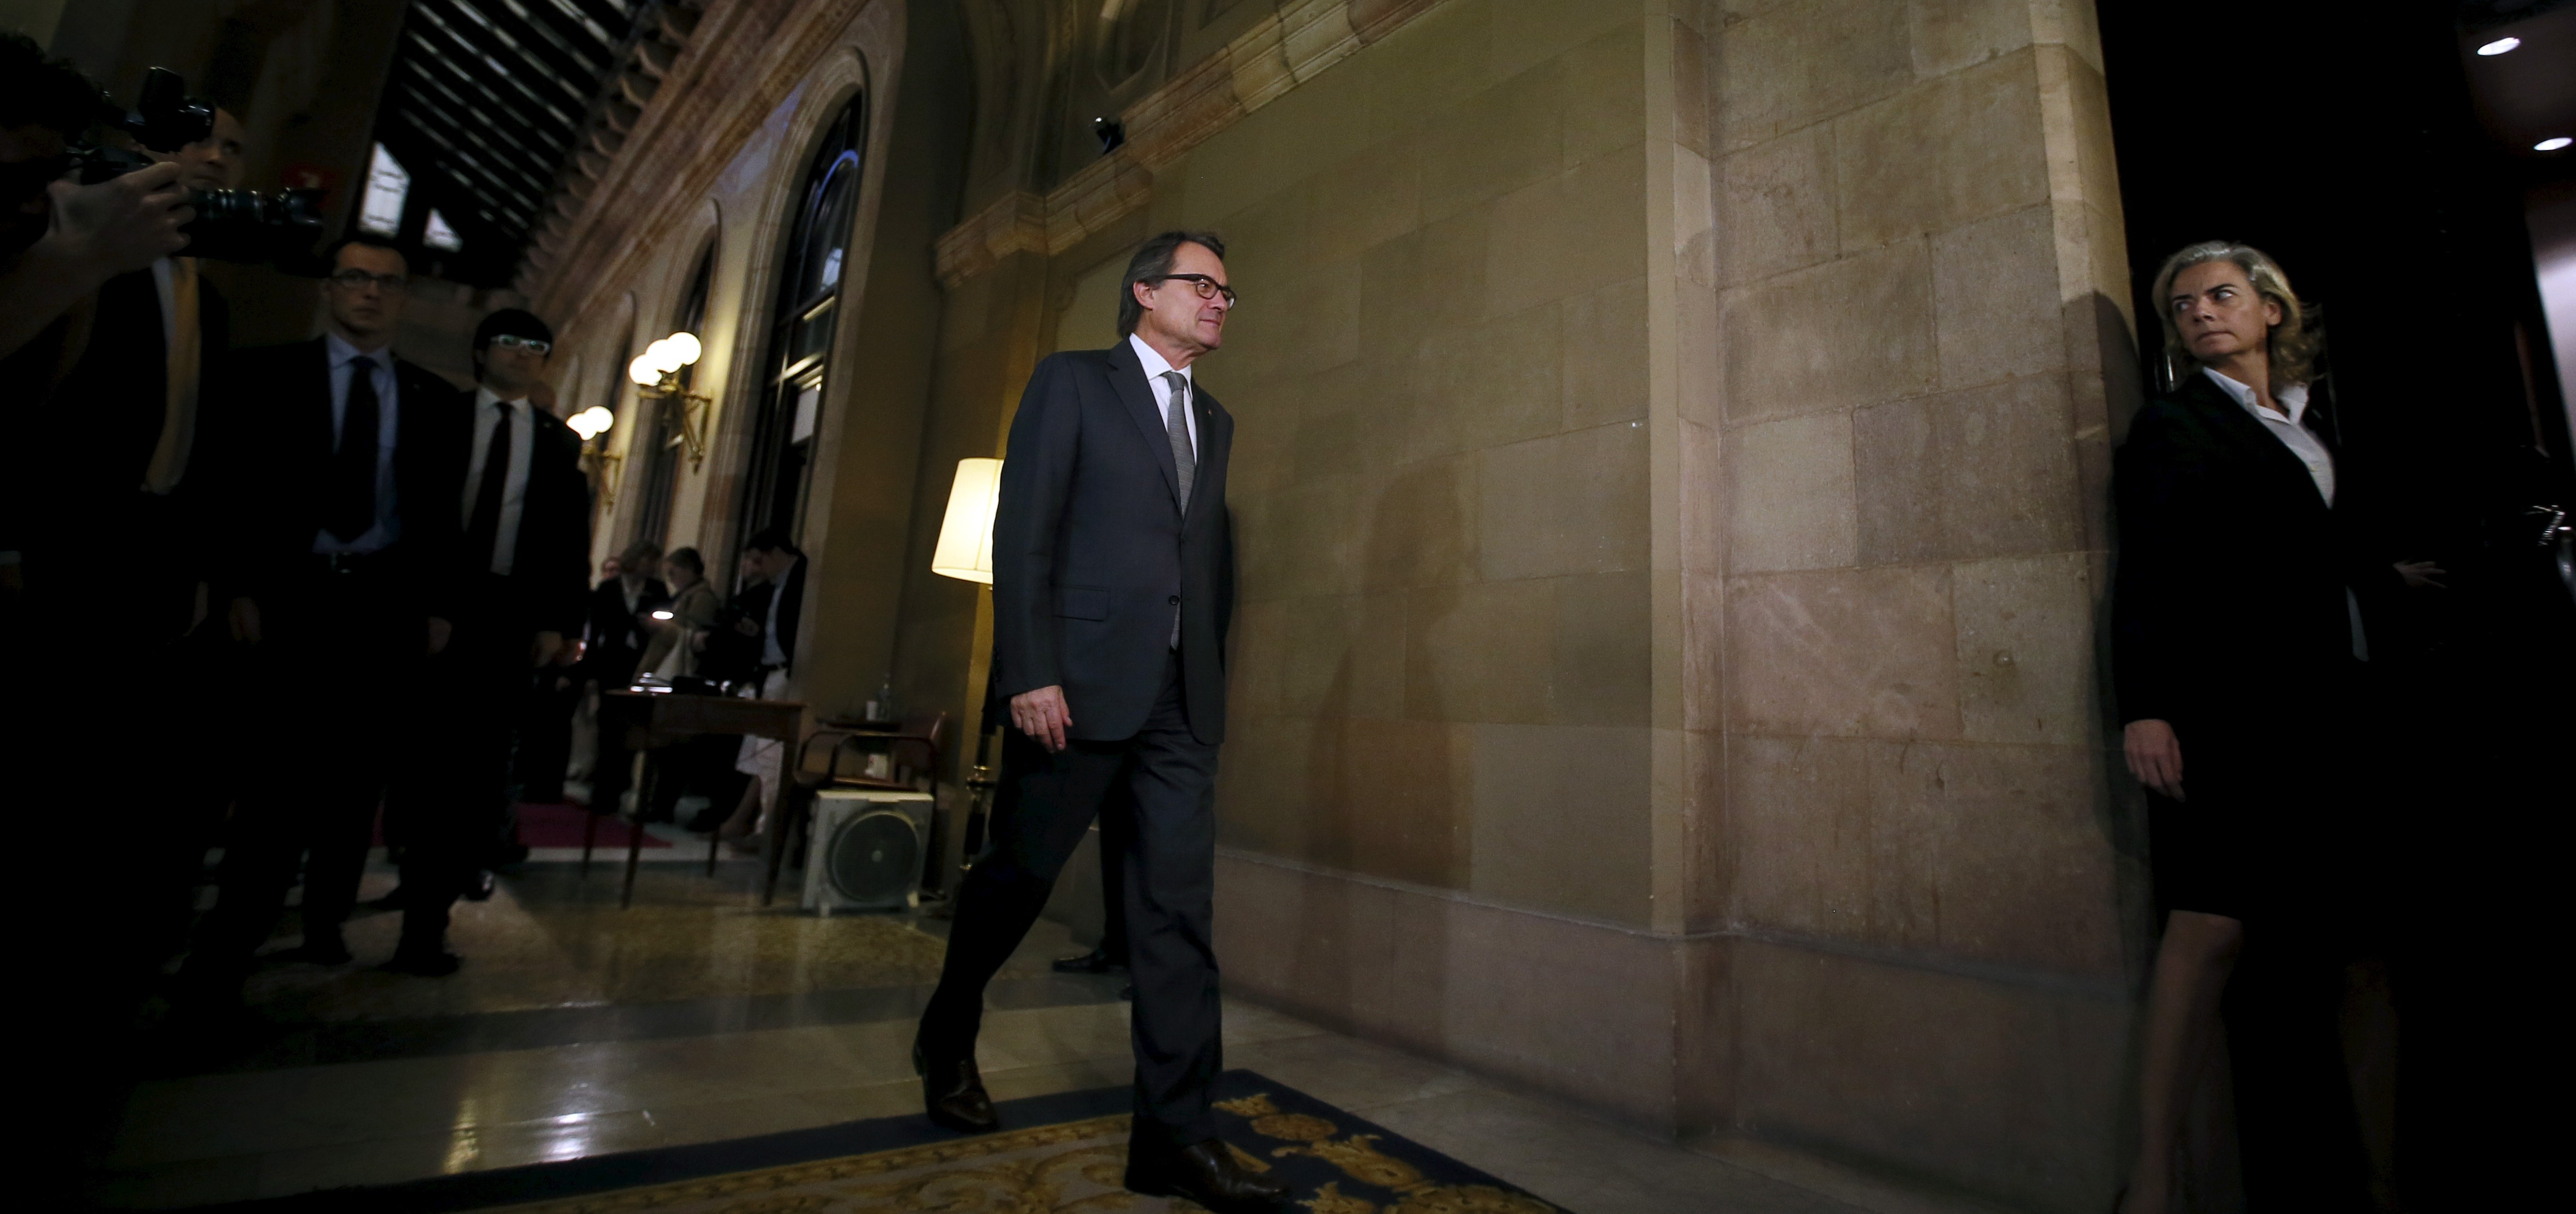 Catalan acting President Artur Mas walks inside parliament after an election session for the new president in Catalonia's regional parliament in Barcelona, Spain, November 12, 2015. Spain's Constitutional Court blocked Catalonia's attempted secession process on Wednesday by agreeing to hear a Spanish government appeal against it, deepening a stand-off over the potential breakaway. Catalonia's regional parliament passed a resolution this week setting out a plan to establish a republic within 18 months in the highly industrialised and populous northeastern region which accounts for about a fifth of Spain's economic output. REUTERS/Albert Gea  - RTS6N0F